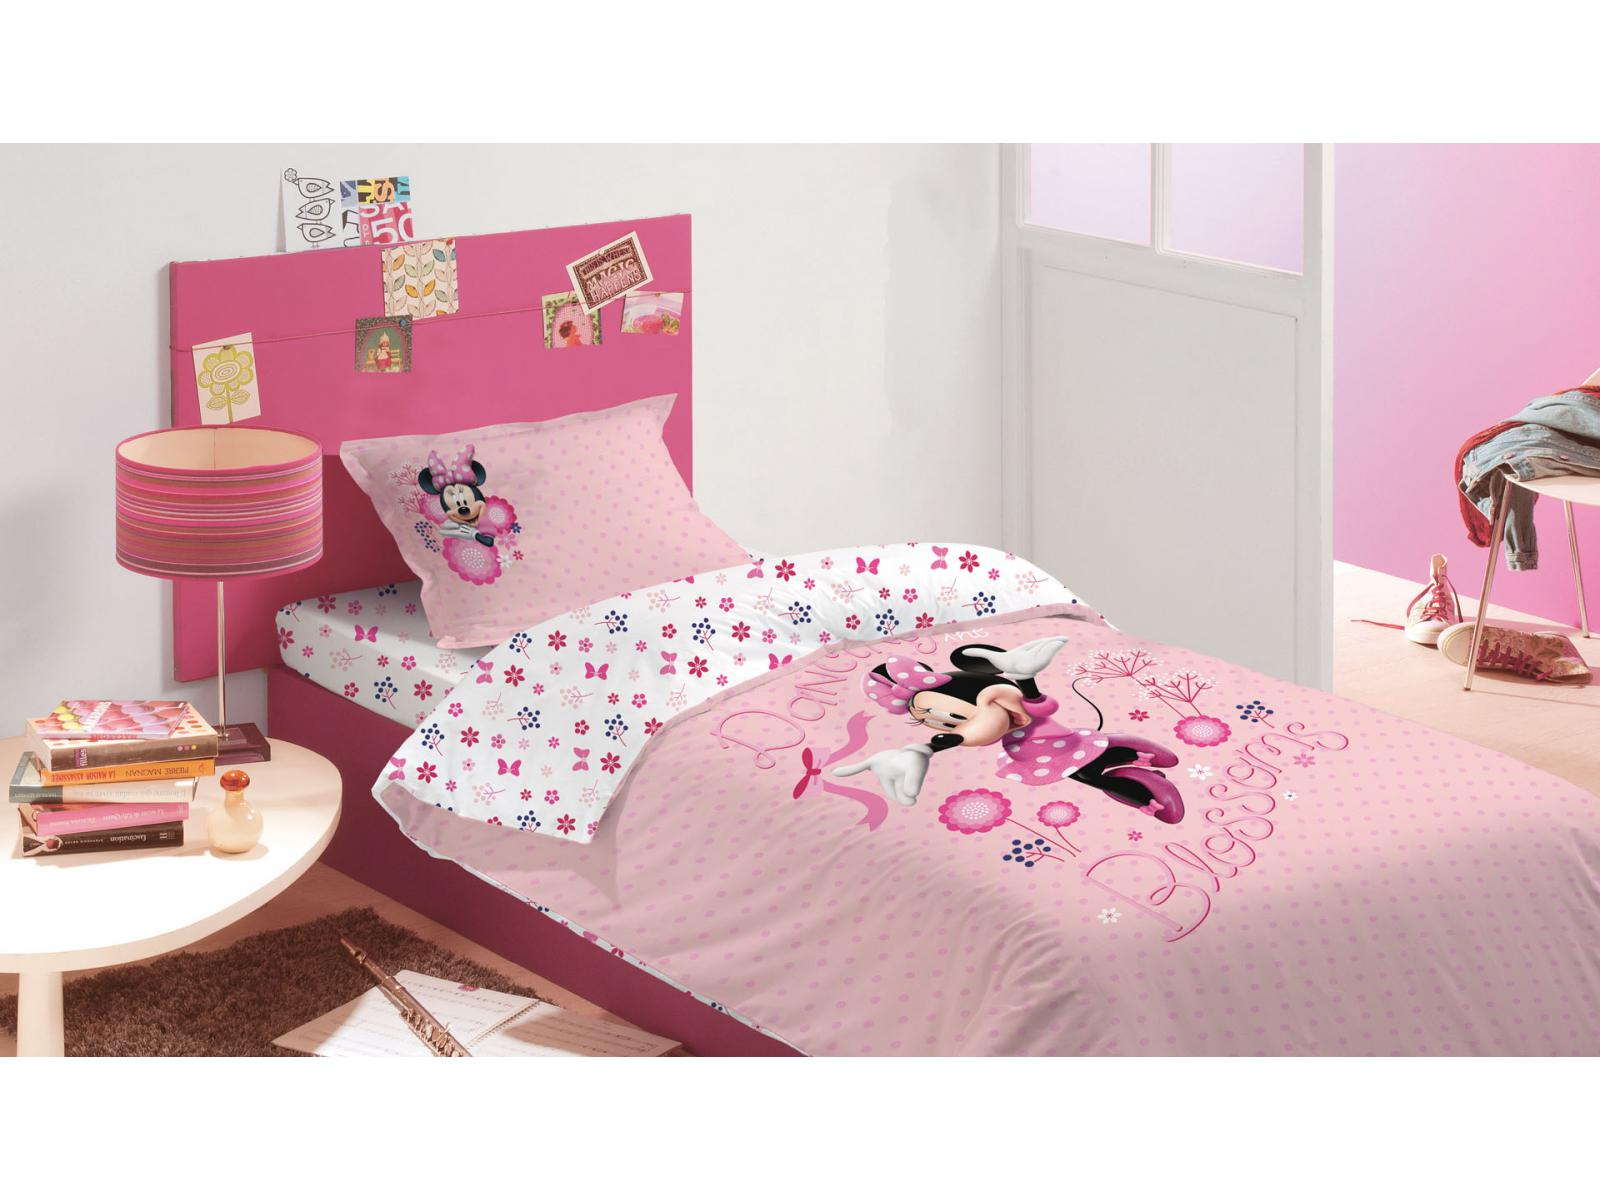 nouveau chambre enfant minnie. Black Bedroom Furniture Sets. Home Design Ideas